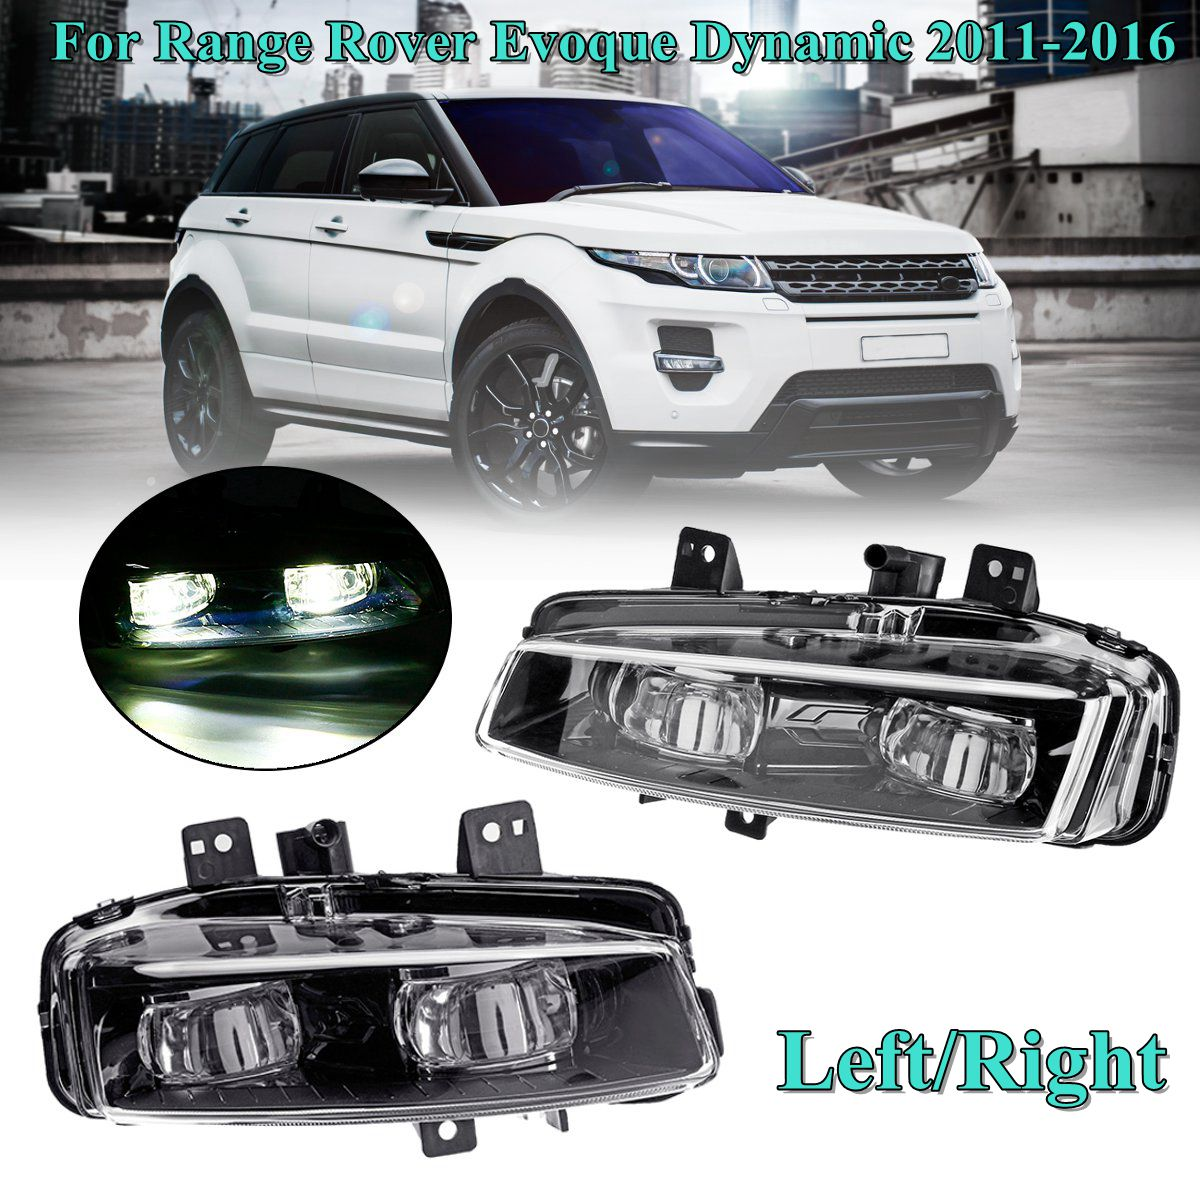 1 Pair Car front left Right Bumper Fog Light Lamp with bulb Replacement for Range Rover Evoque Dynamic 2011 2012 2013 14-161 Pair Car front left Right Bumper Fog Light Lamp with bulb Replacement for Range Rover Evoque Dynamic 2011 2012 2013 14-16